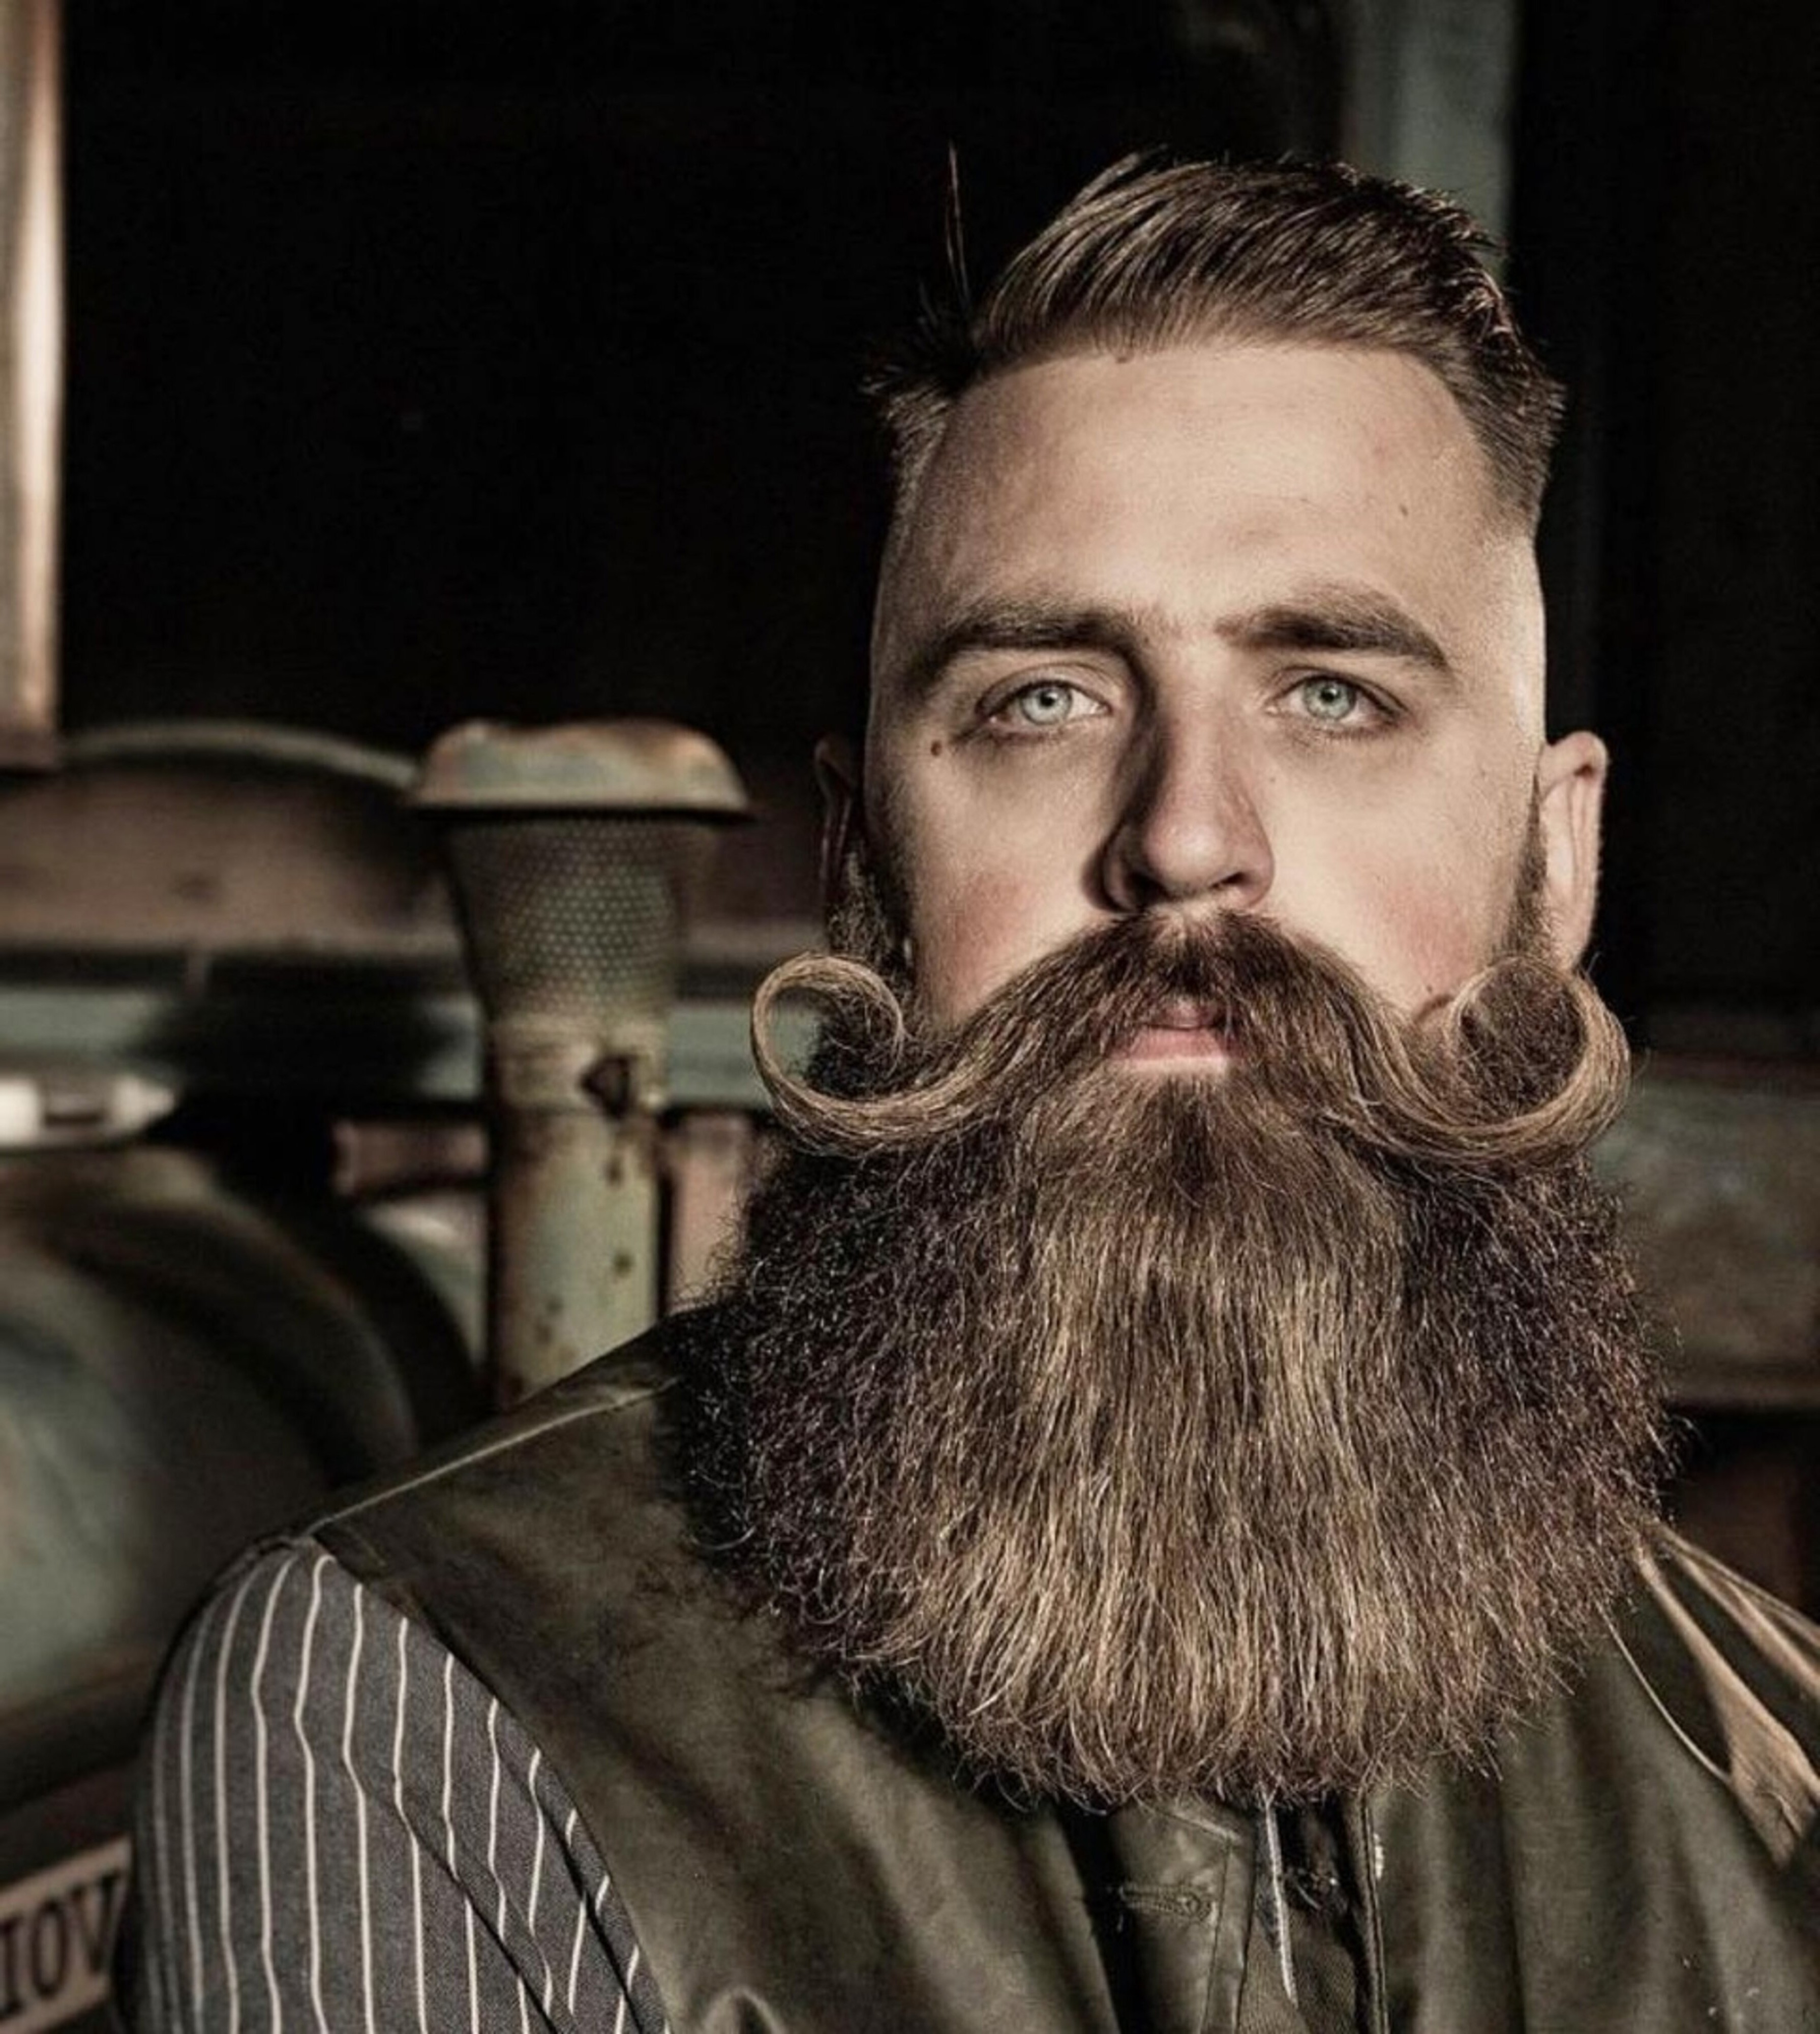 A huge handlebar mustache for males.